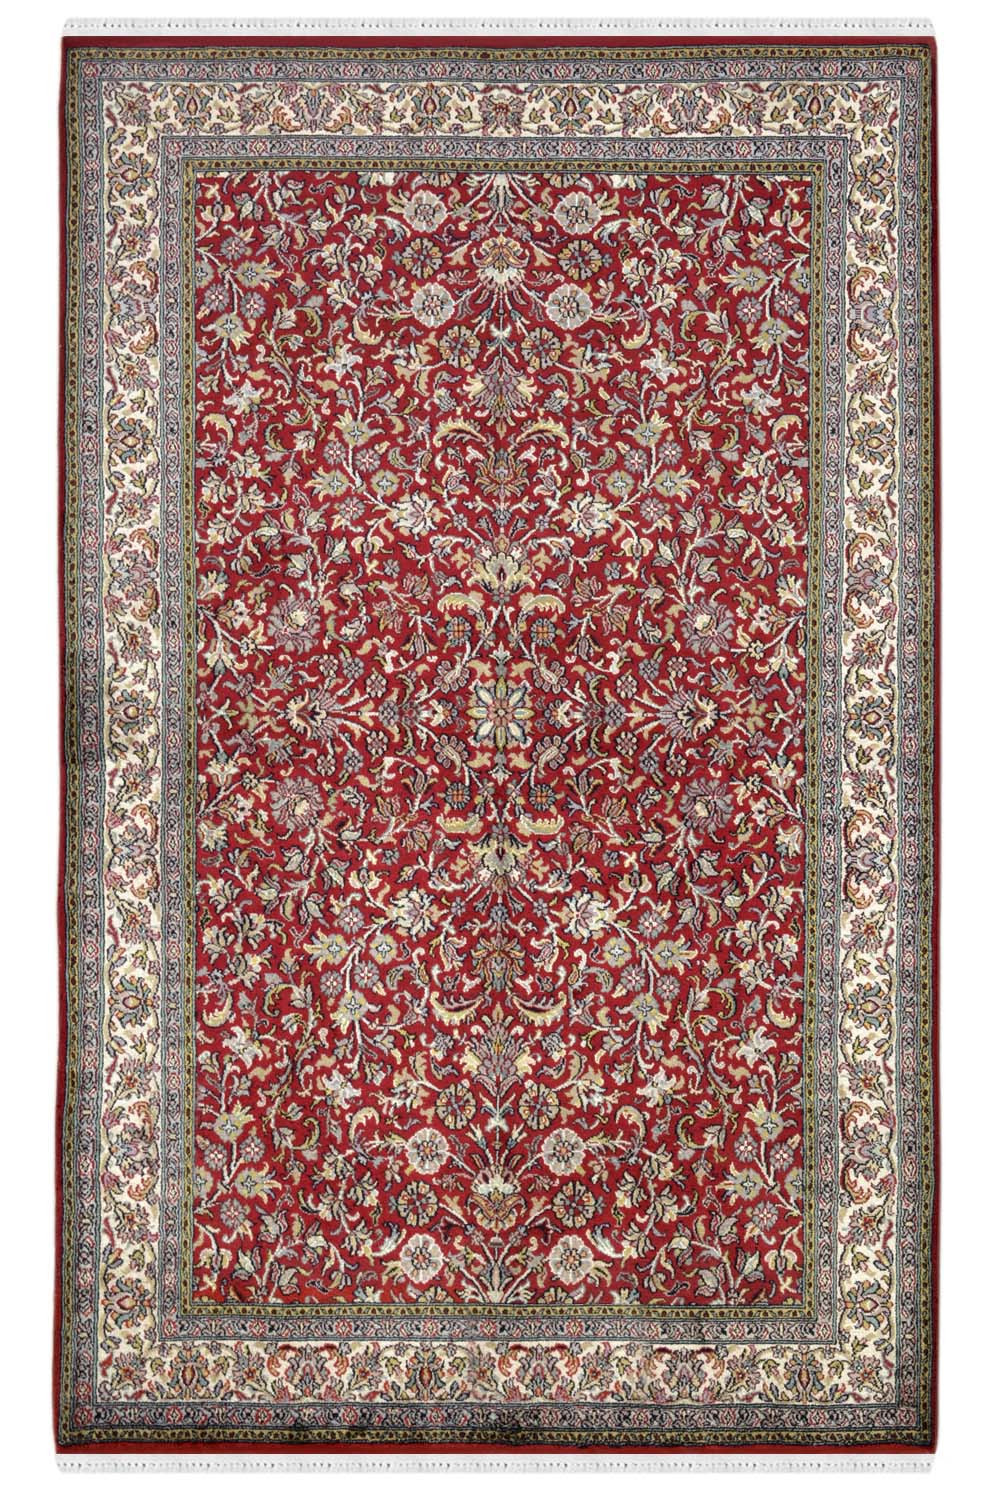 Shop Discount Rugs Online All Over Bagh Floral At Cheapest